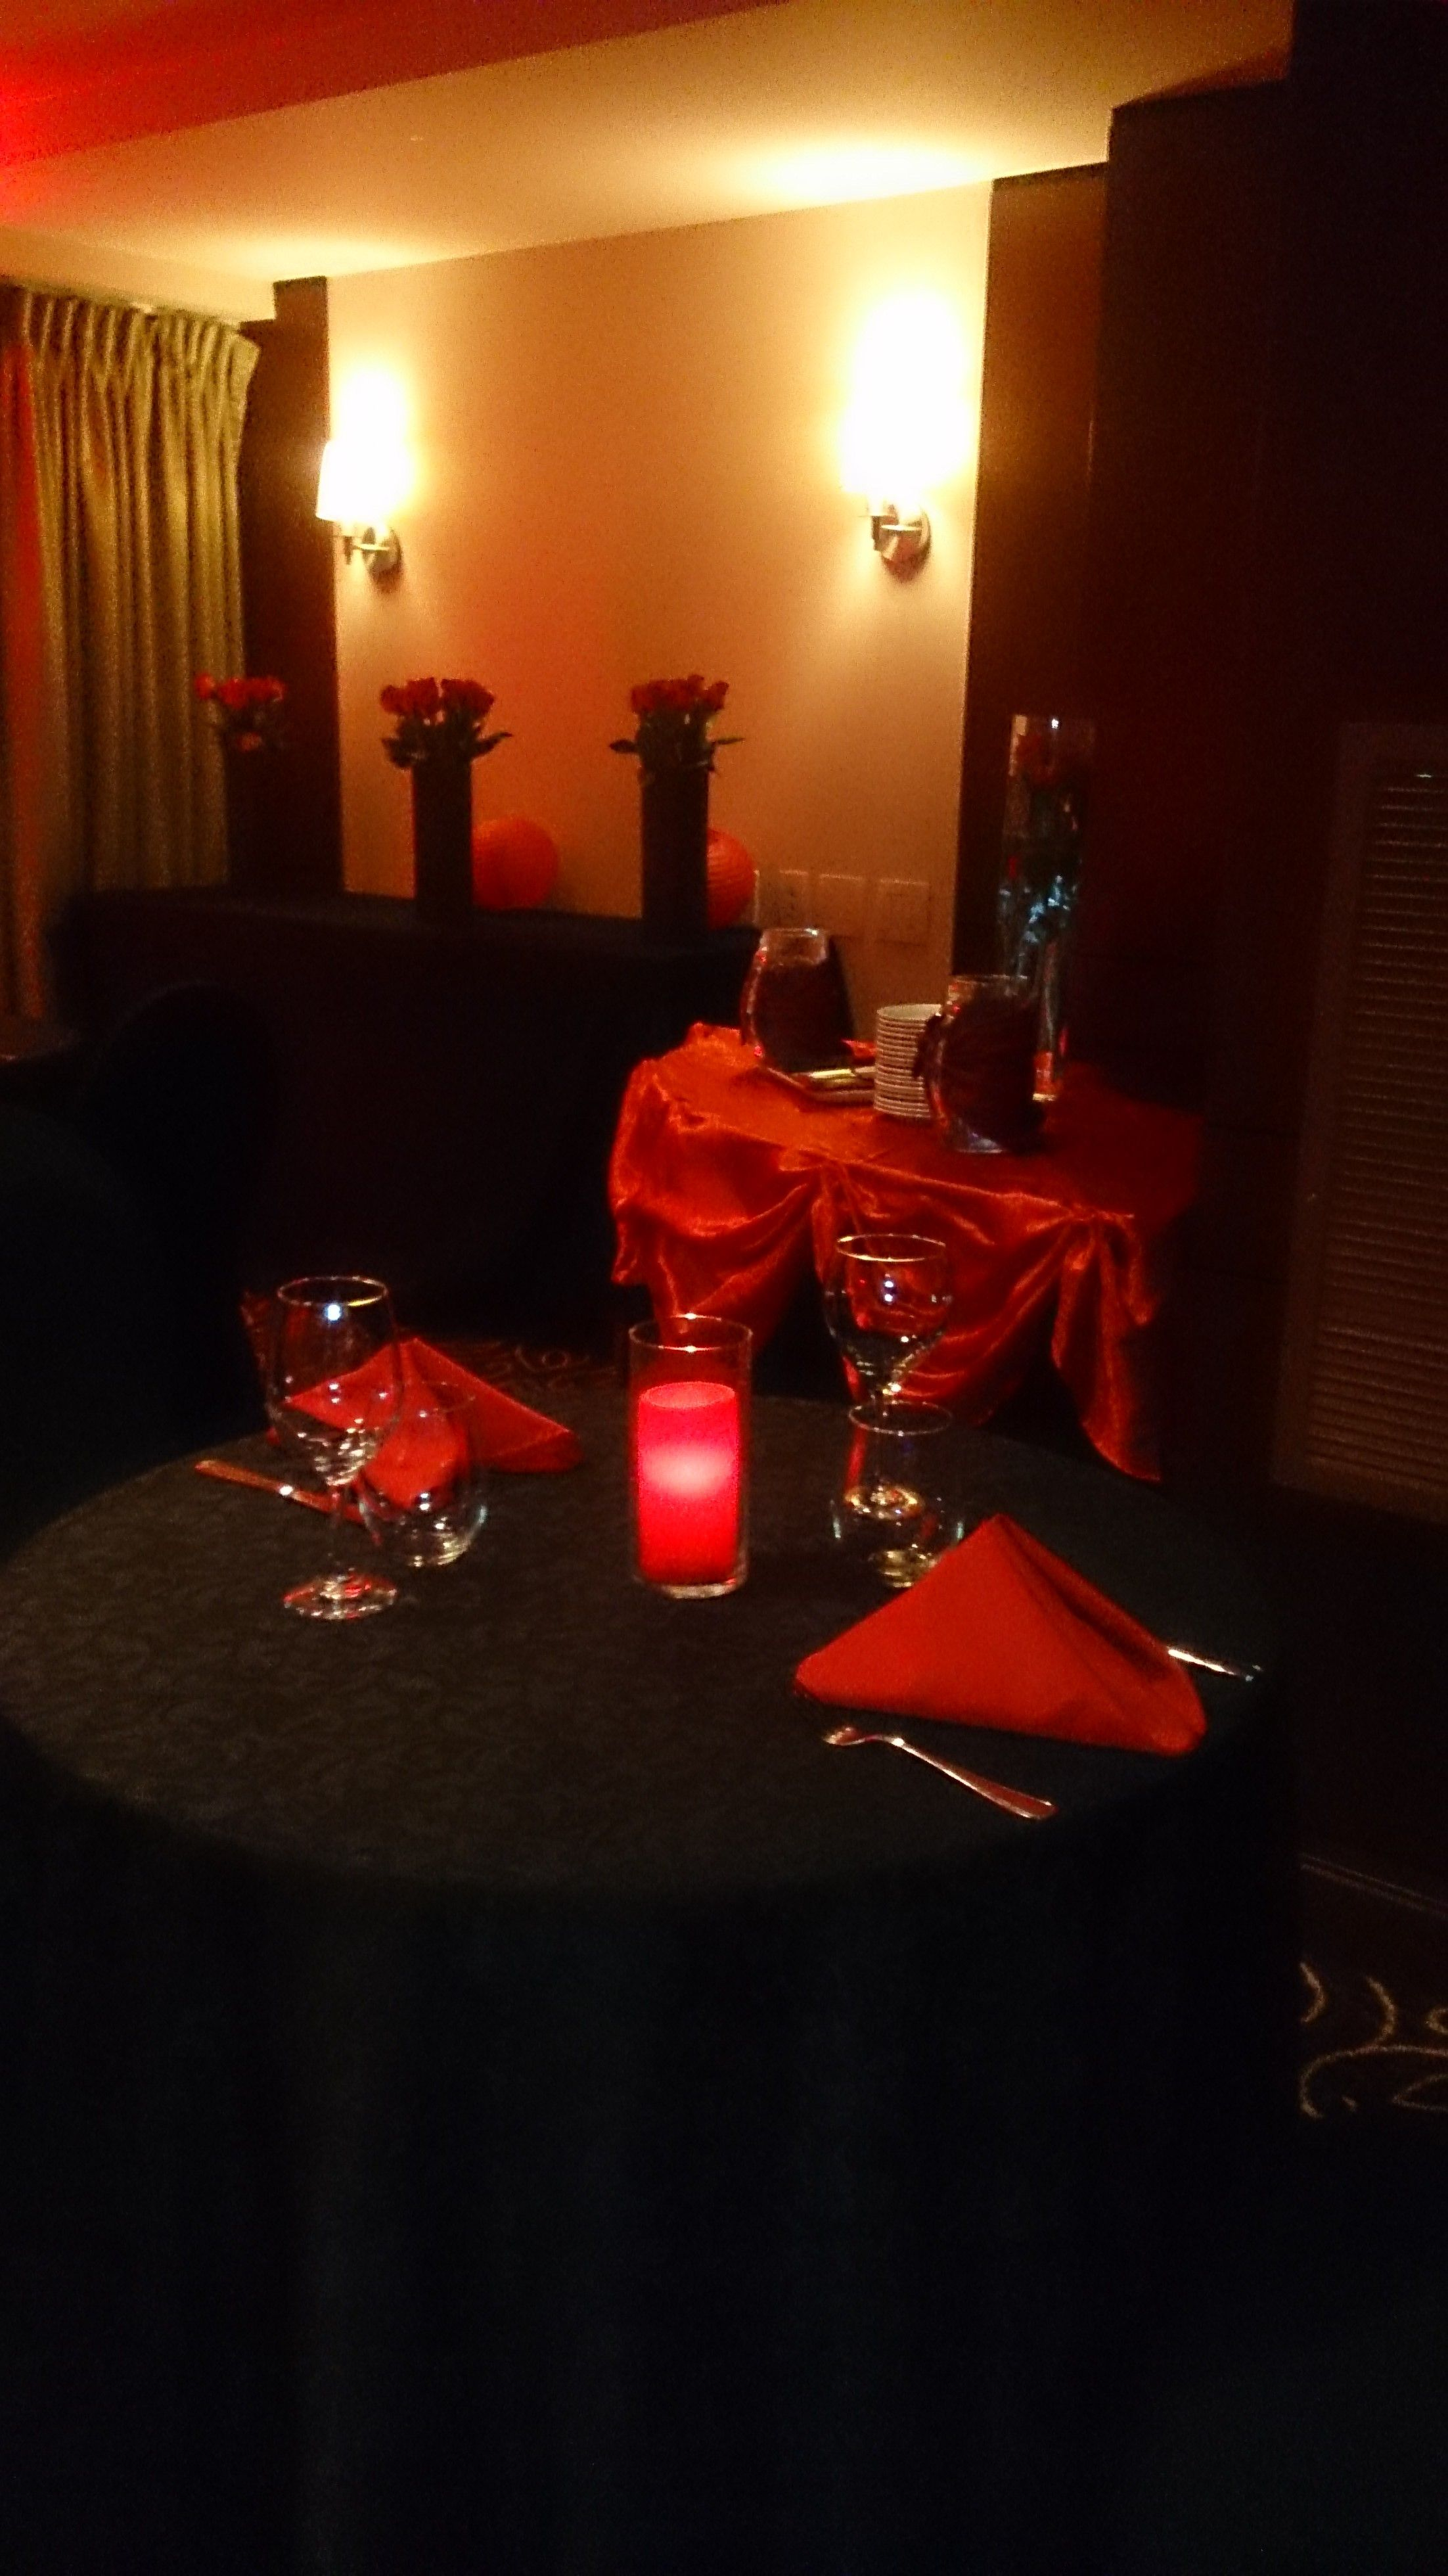 Valentine S Day Decorations At Marco Polo S Restaurant Located Inside The Viana Hotel And Spa On Long Island Ny Restaurant Restaurant Bar Organic Wine